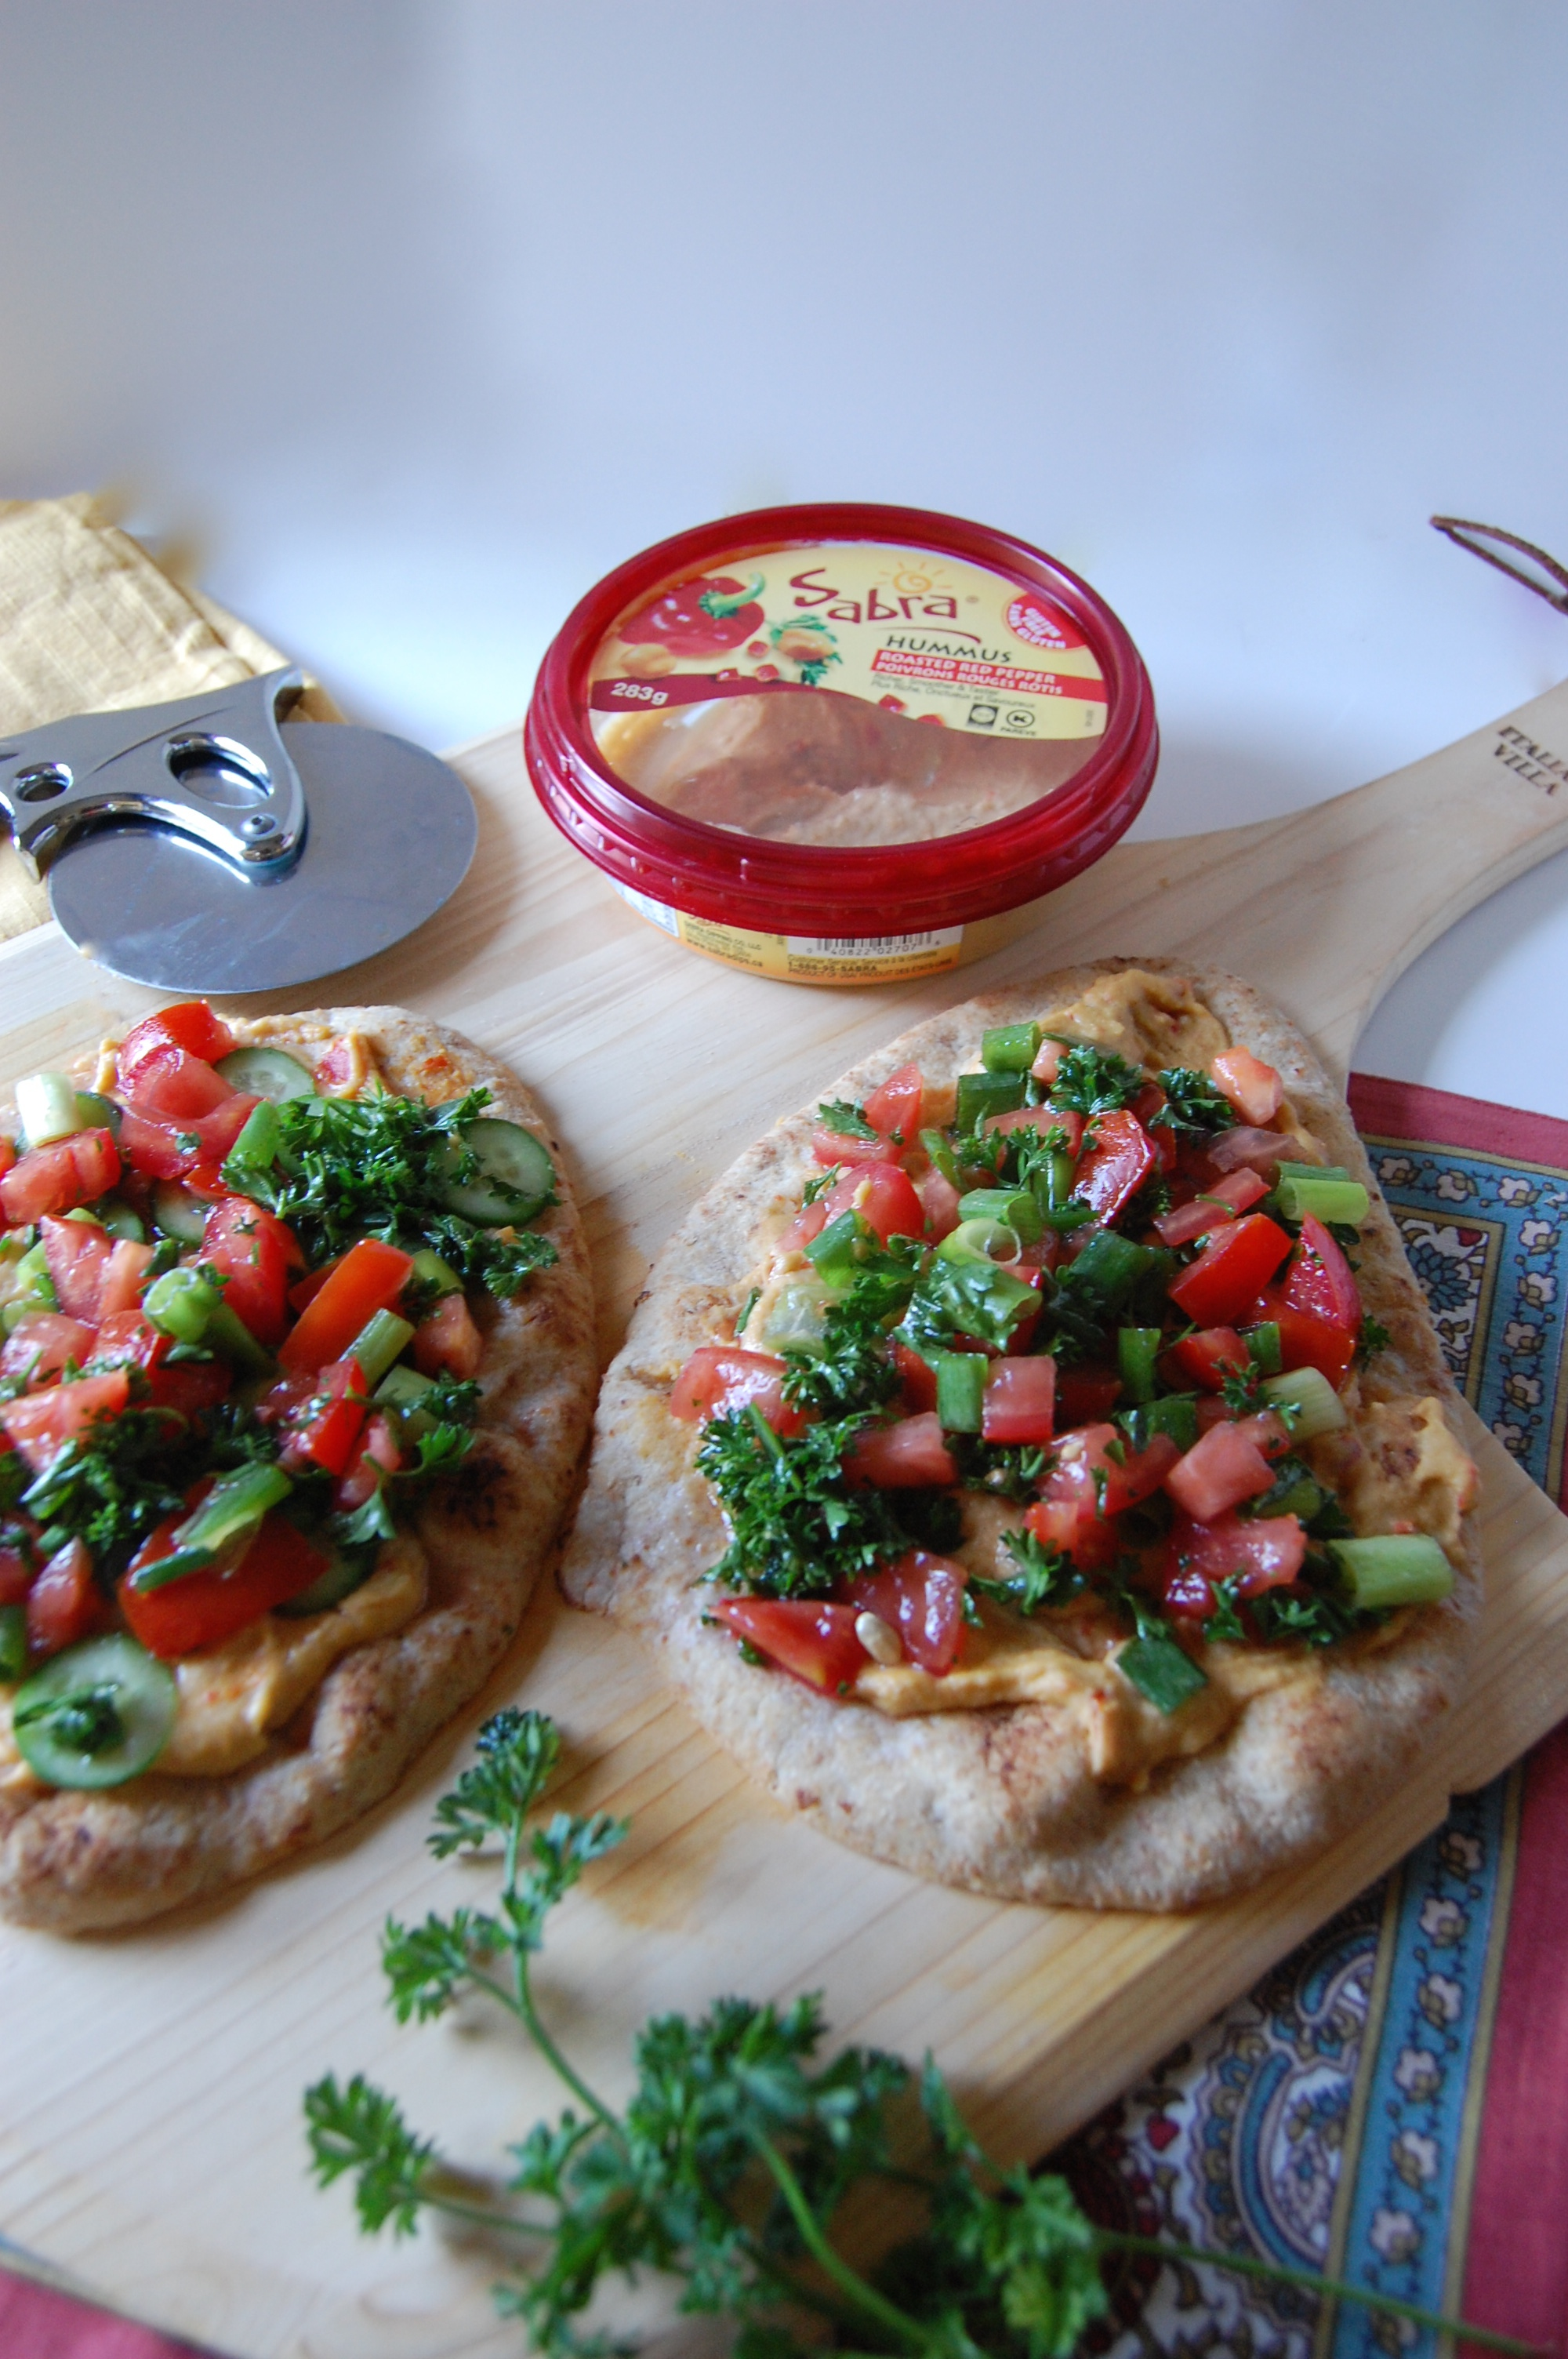 Mediterraneaon hummus naan bread pizza